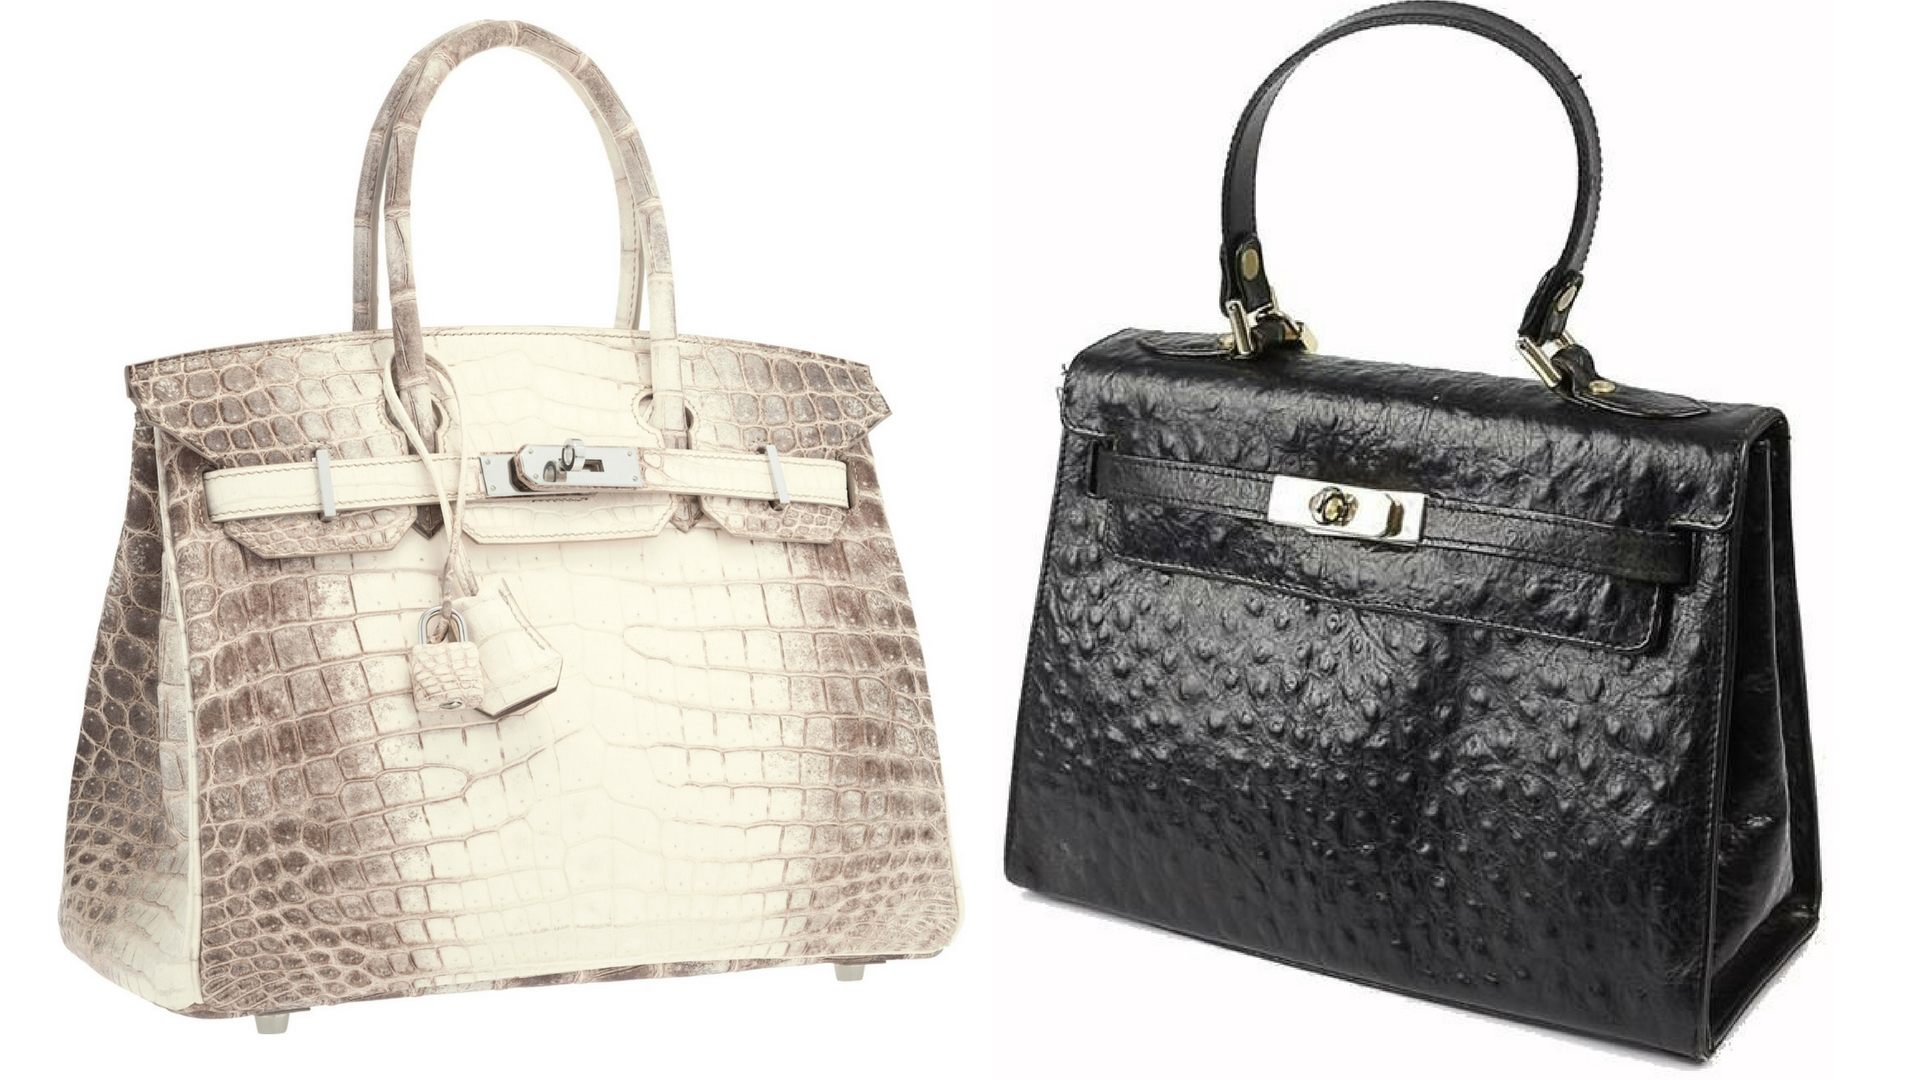 Buy Bags Hermes collection birkin and kelly bag pictures trends